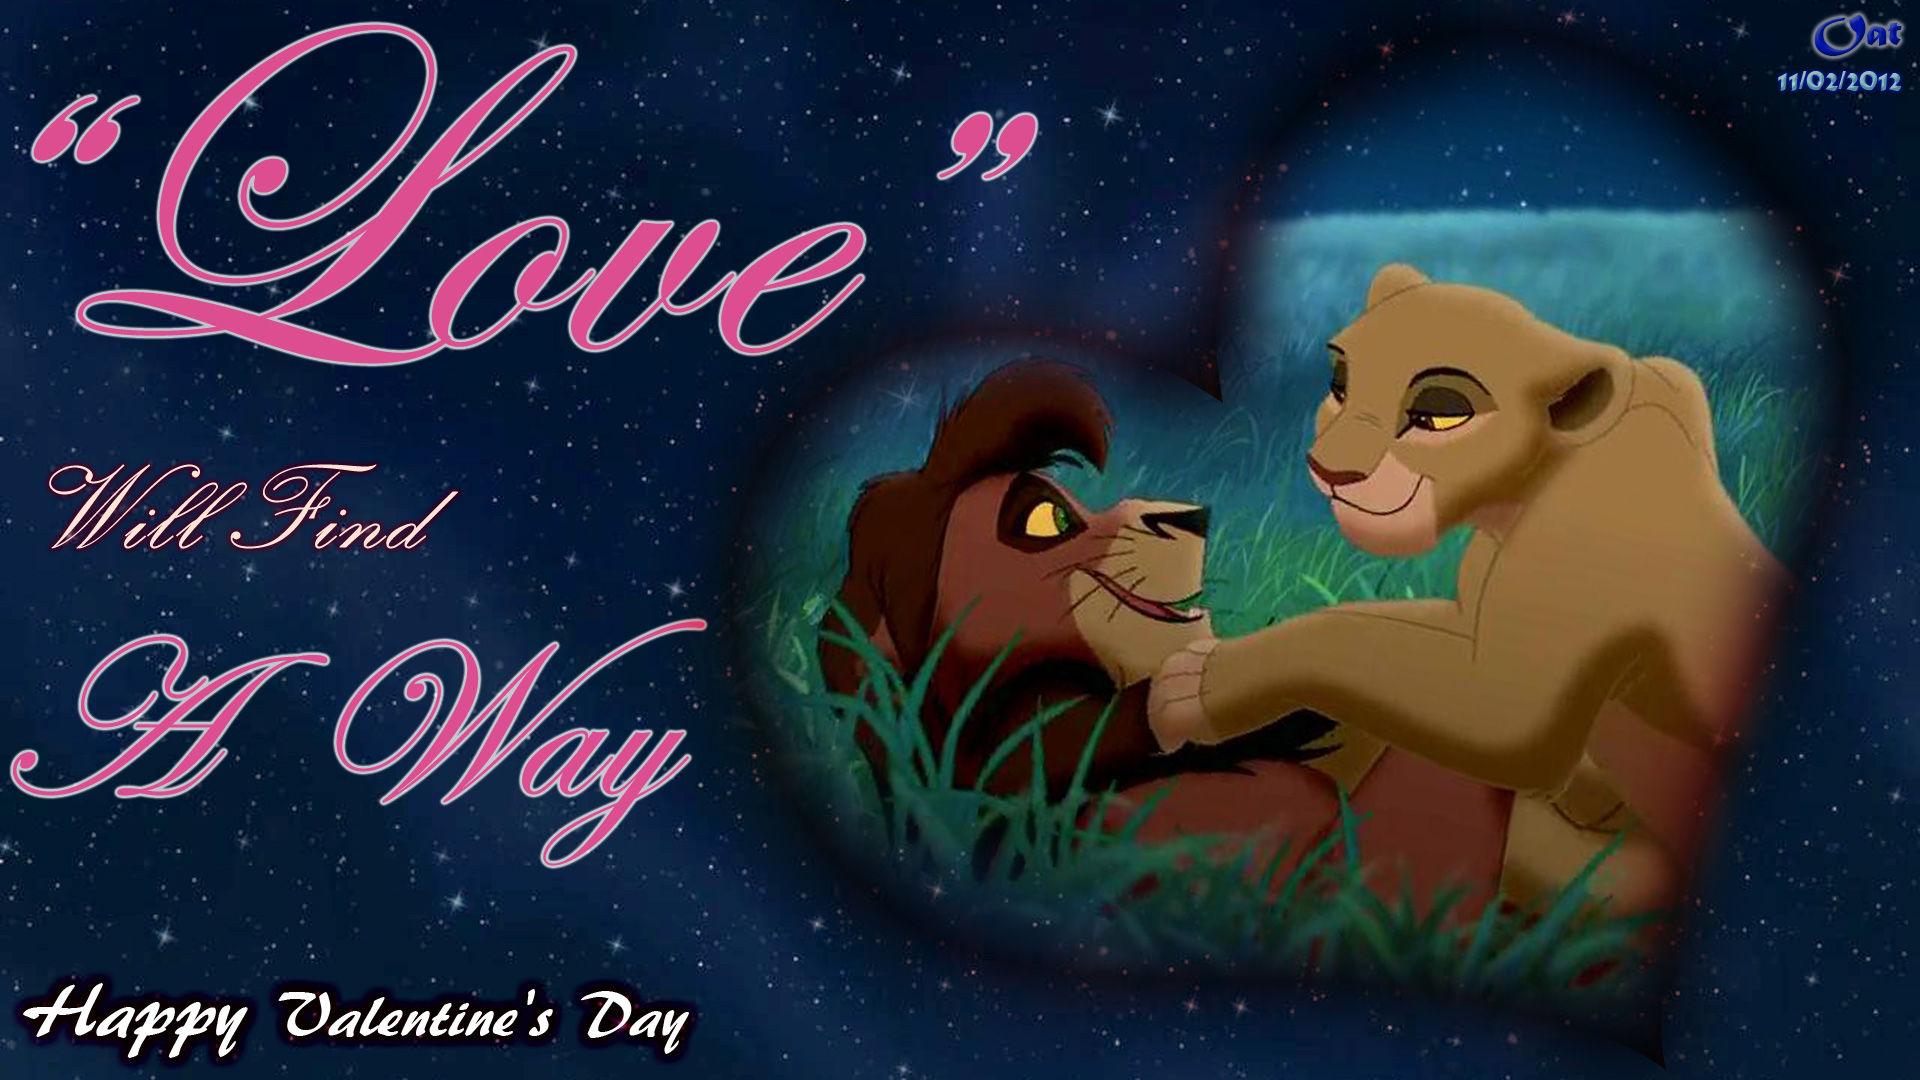 Kovu-and-Kiara-Love-kovu oat-30735925-1920-1080 jpgLion King 2 Kiara And Kovu Love Song